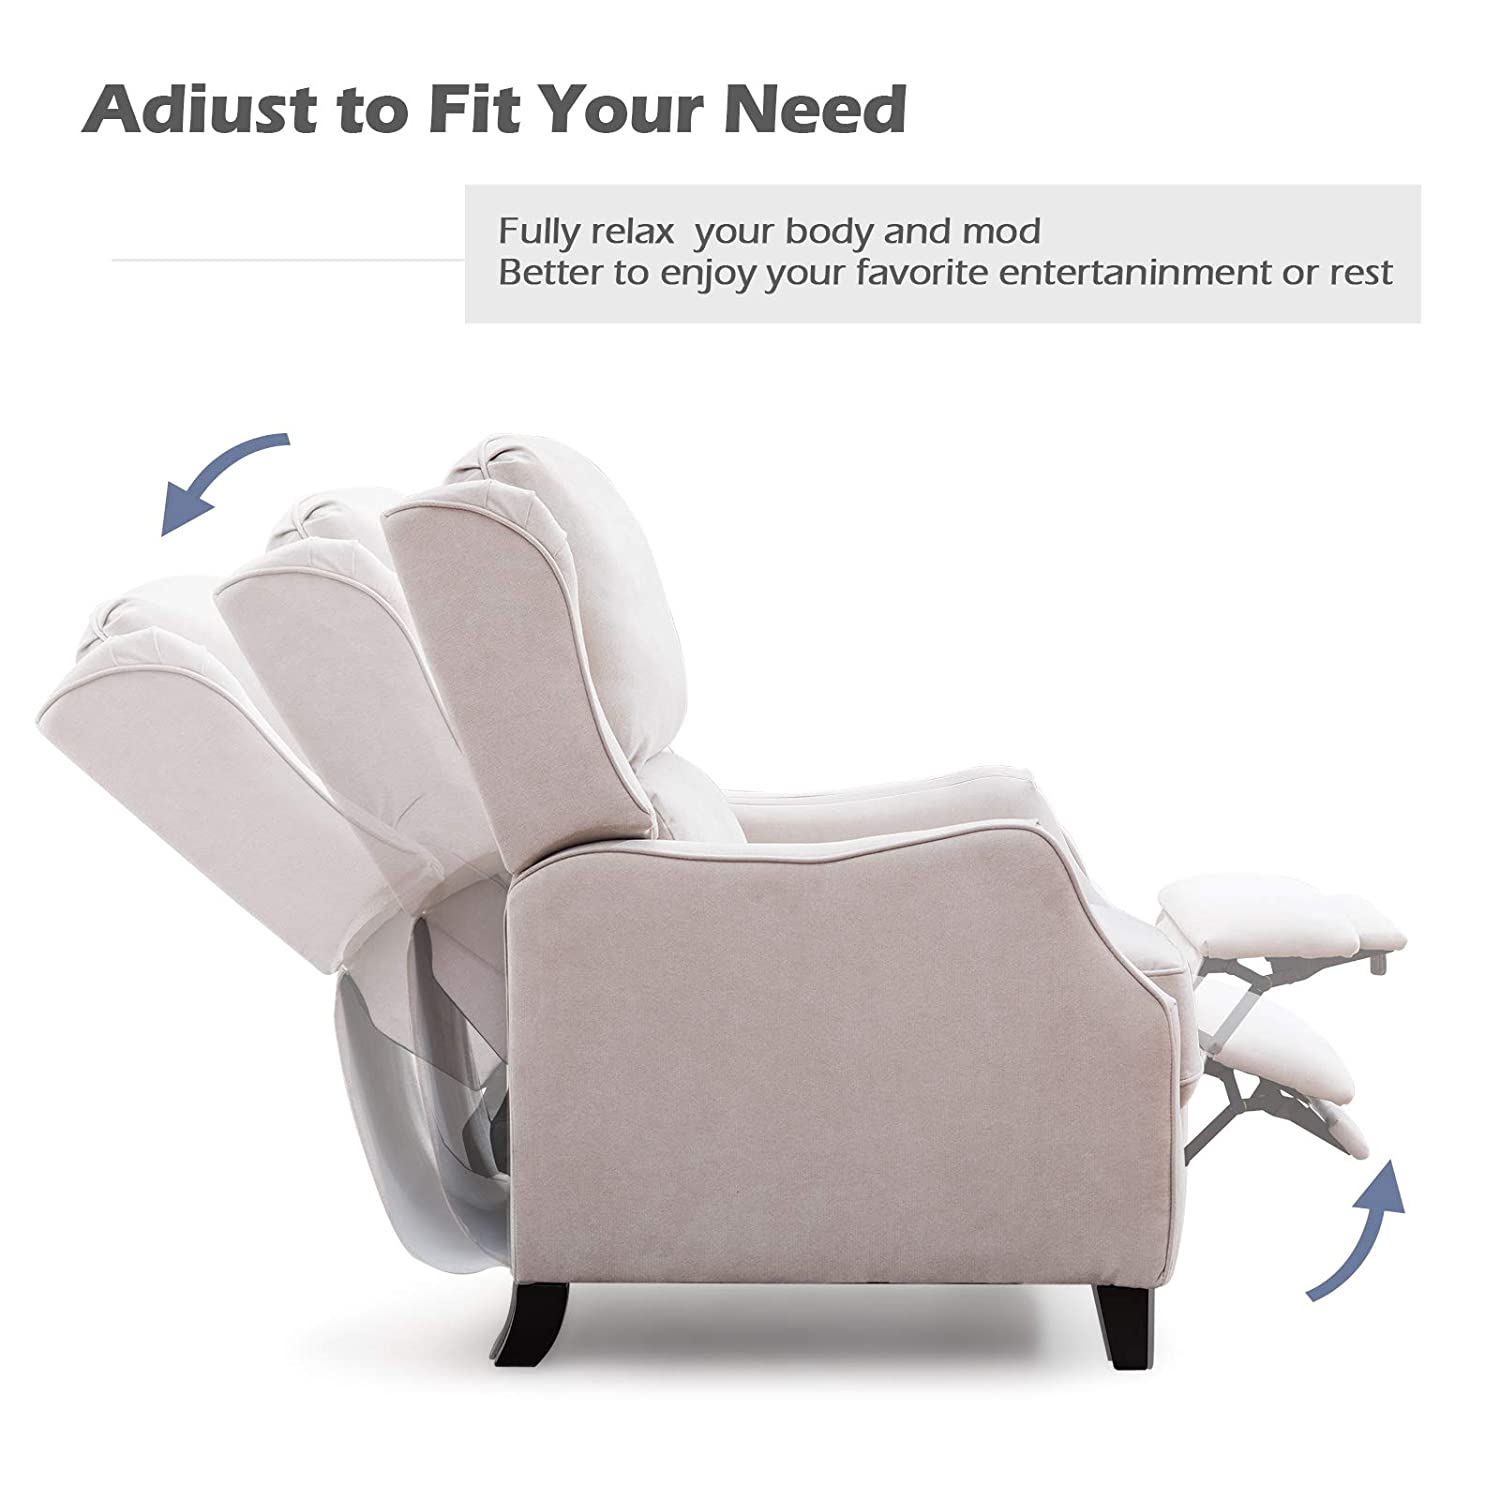 Amazon.com: ANJ - Silla reclinable con respaldo y cojín ...